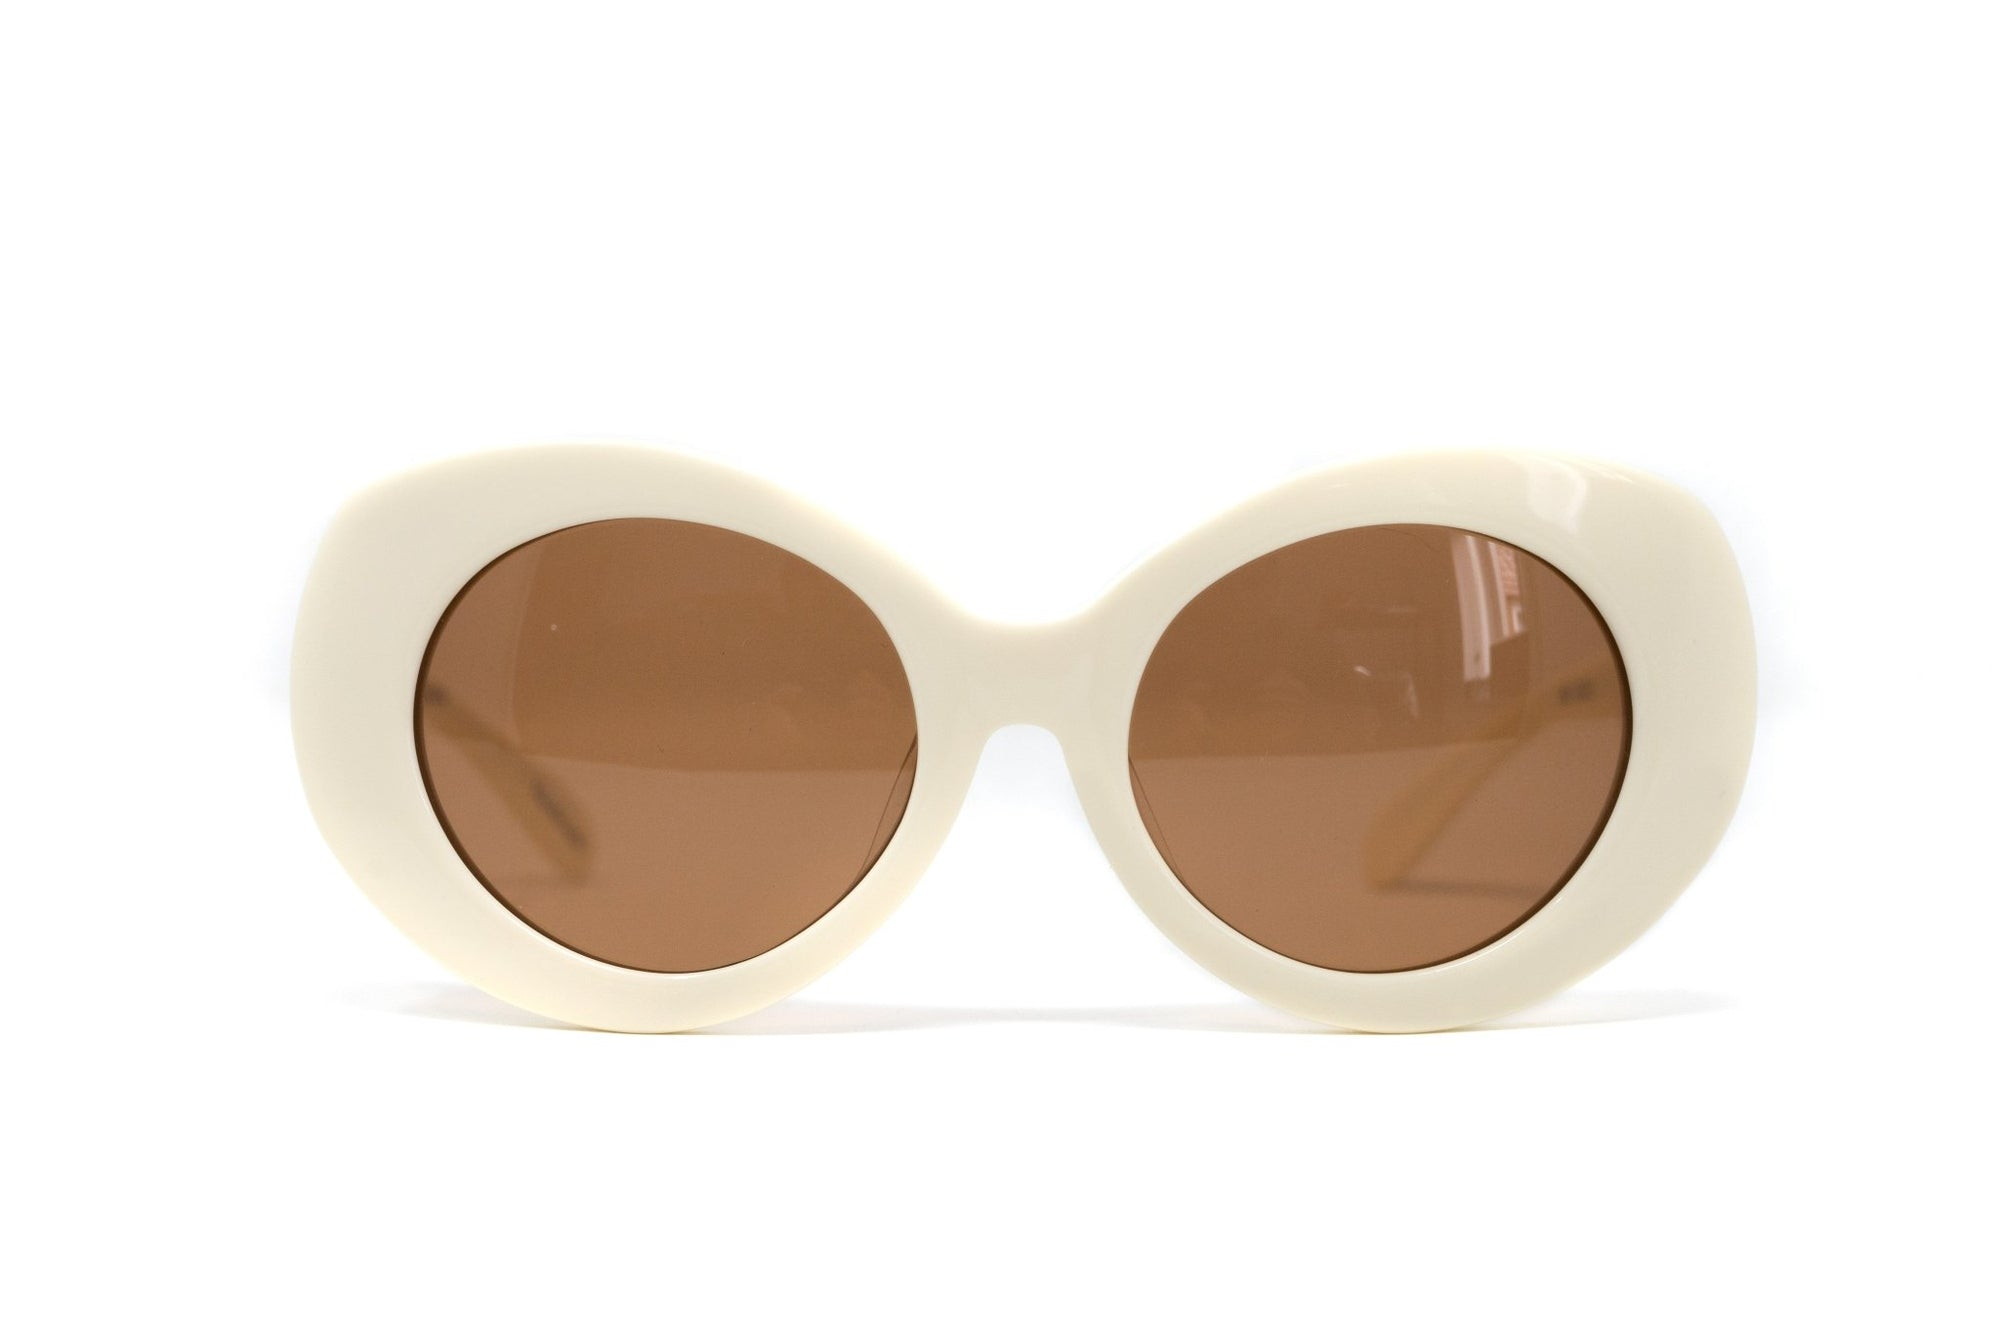 Eley Kishimoto Sunglasses Cat Eye Cream With Brown Category 2 Lenses 6EK9C3WHITE - Watches & Crystals